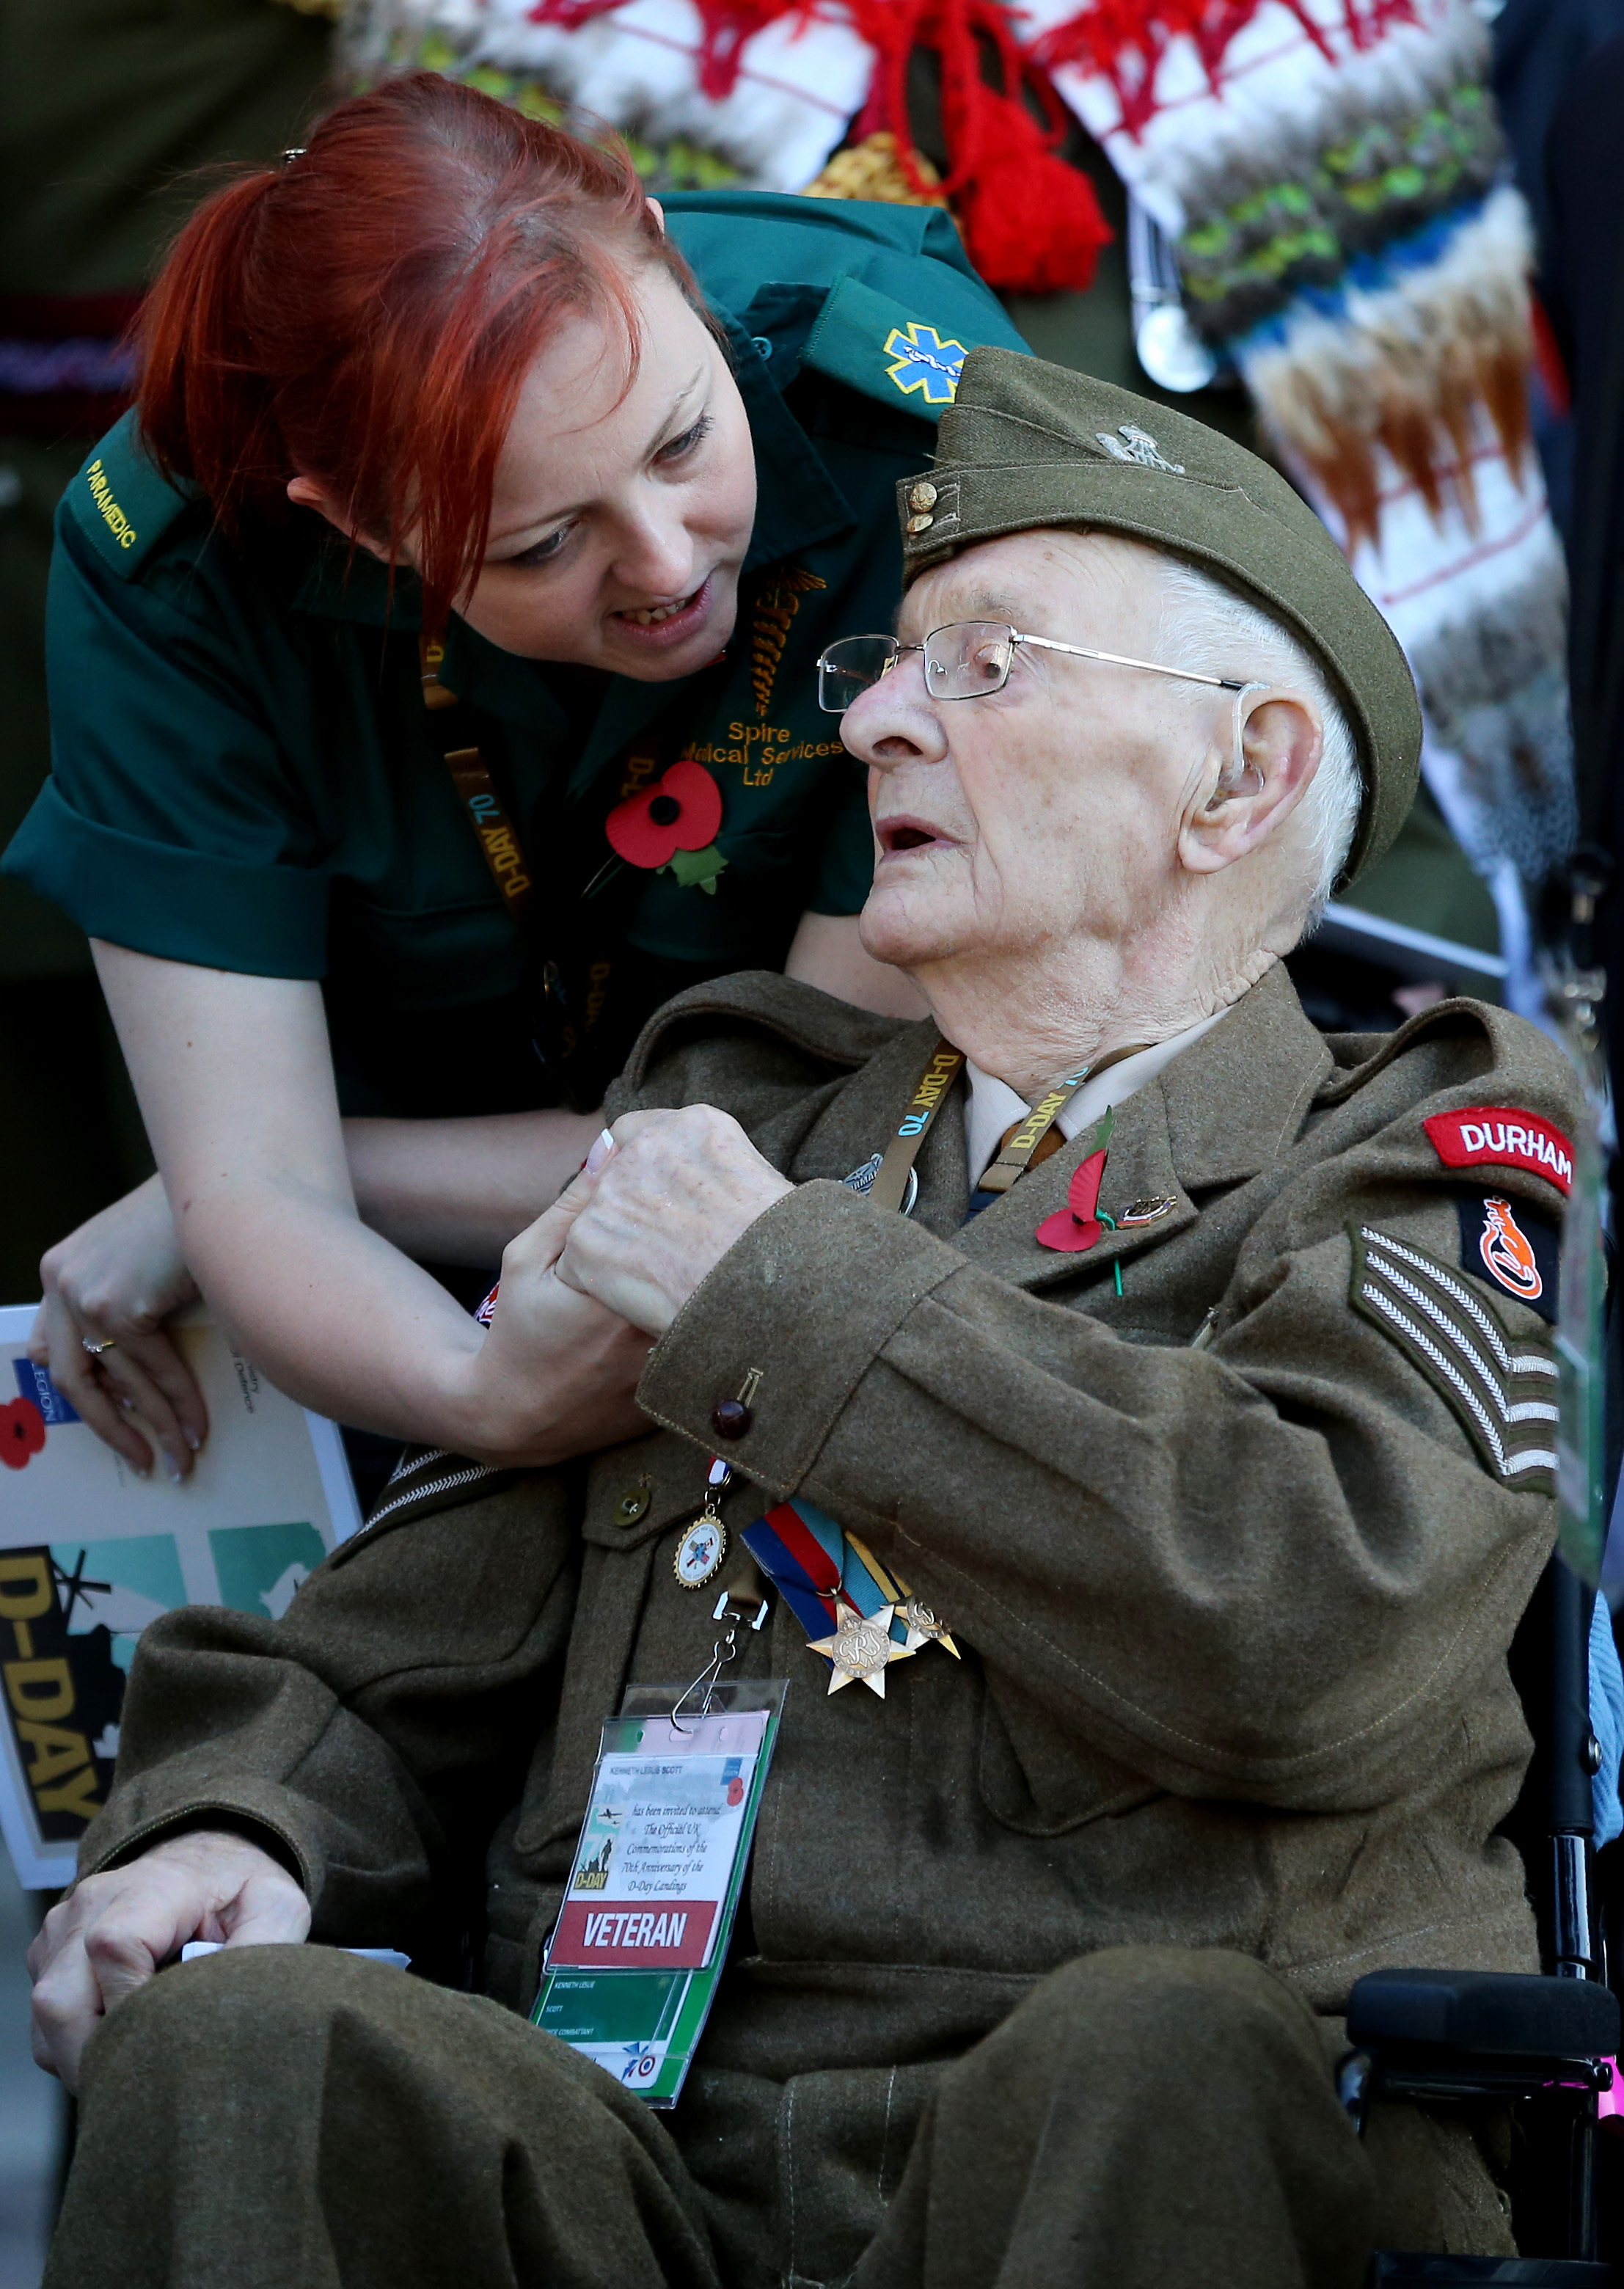 D-Day veterans return to the beaches of France to pay tribute to their fallen comrades